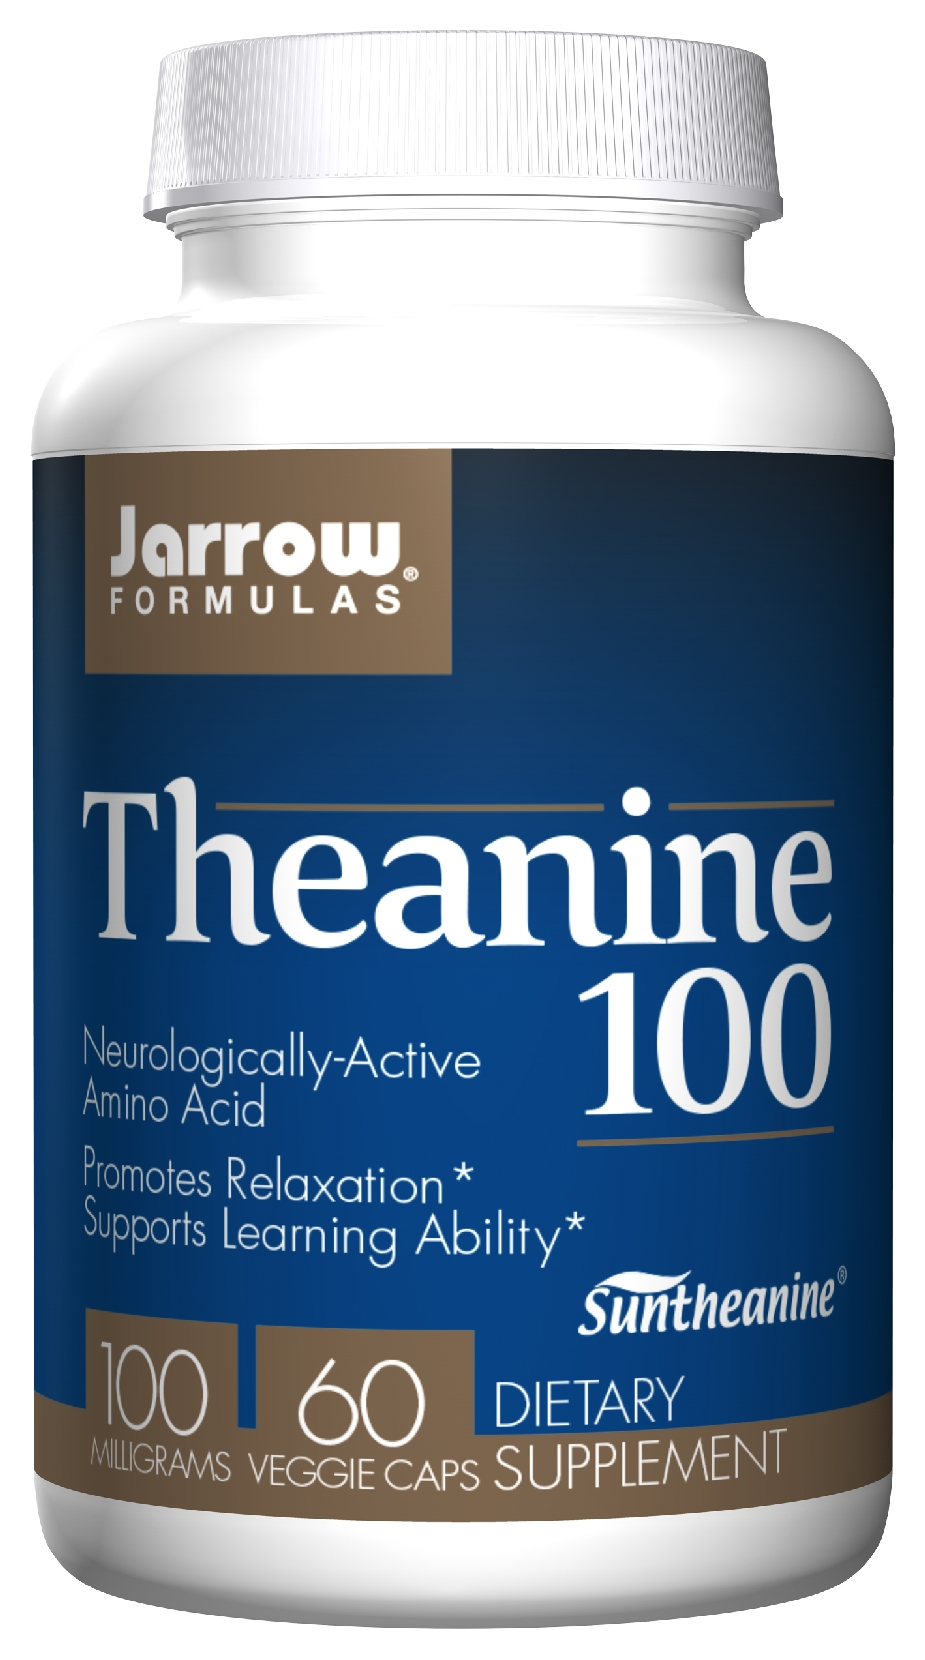 Theanine 100 100 mg 60 caps by Jarrow Formulas